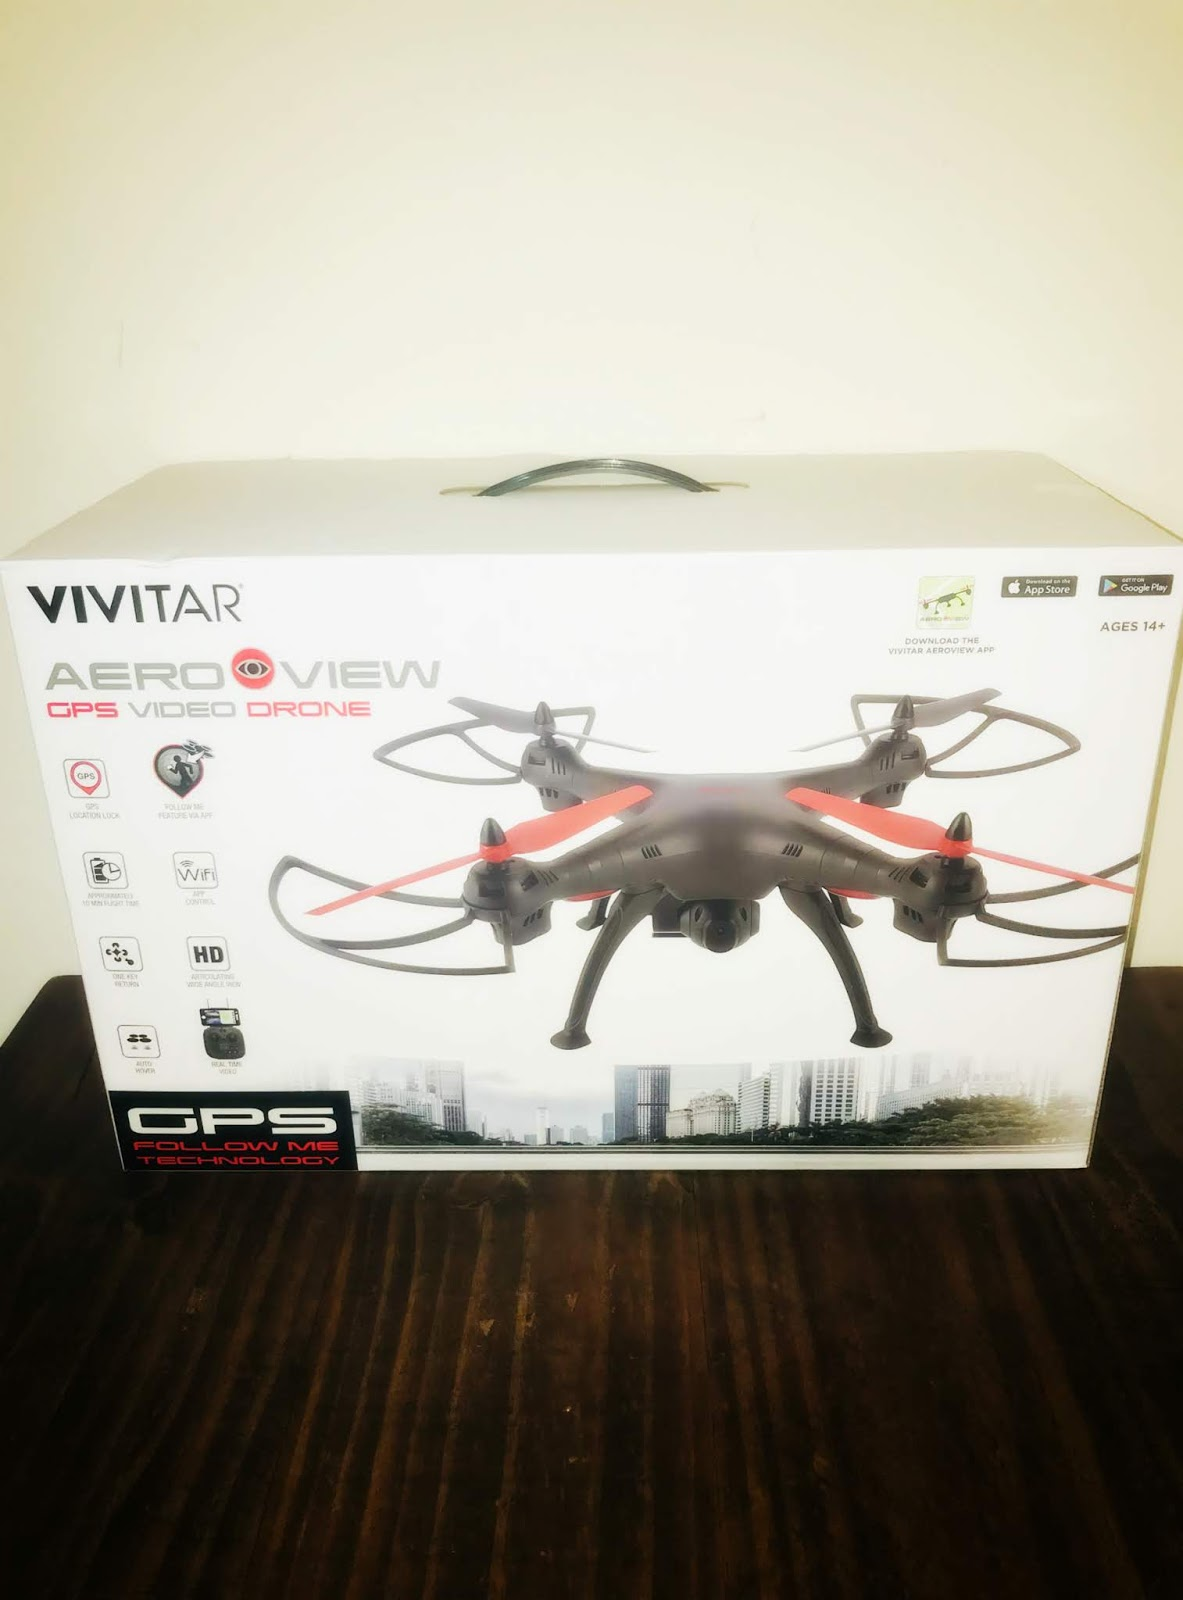 Living a Fit and Full Life: The Vivitar AeroView Drone with Camera